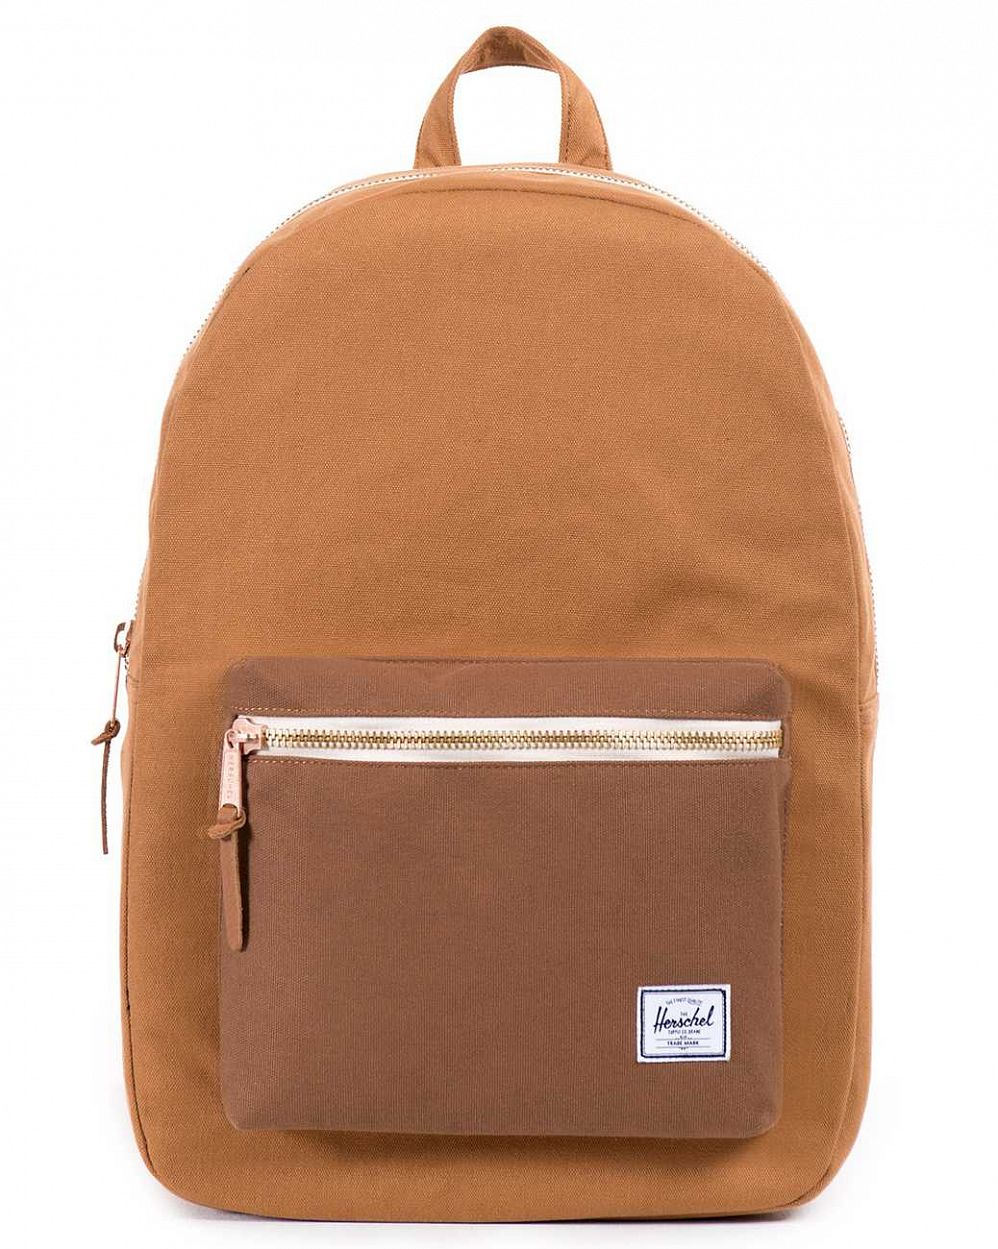 купить Рюкзак Herschel Settlement Caramel Coated Cotton Canvas в Москве